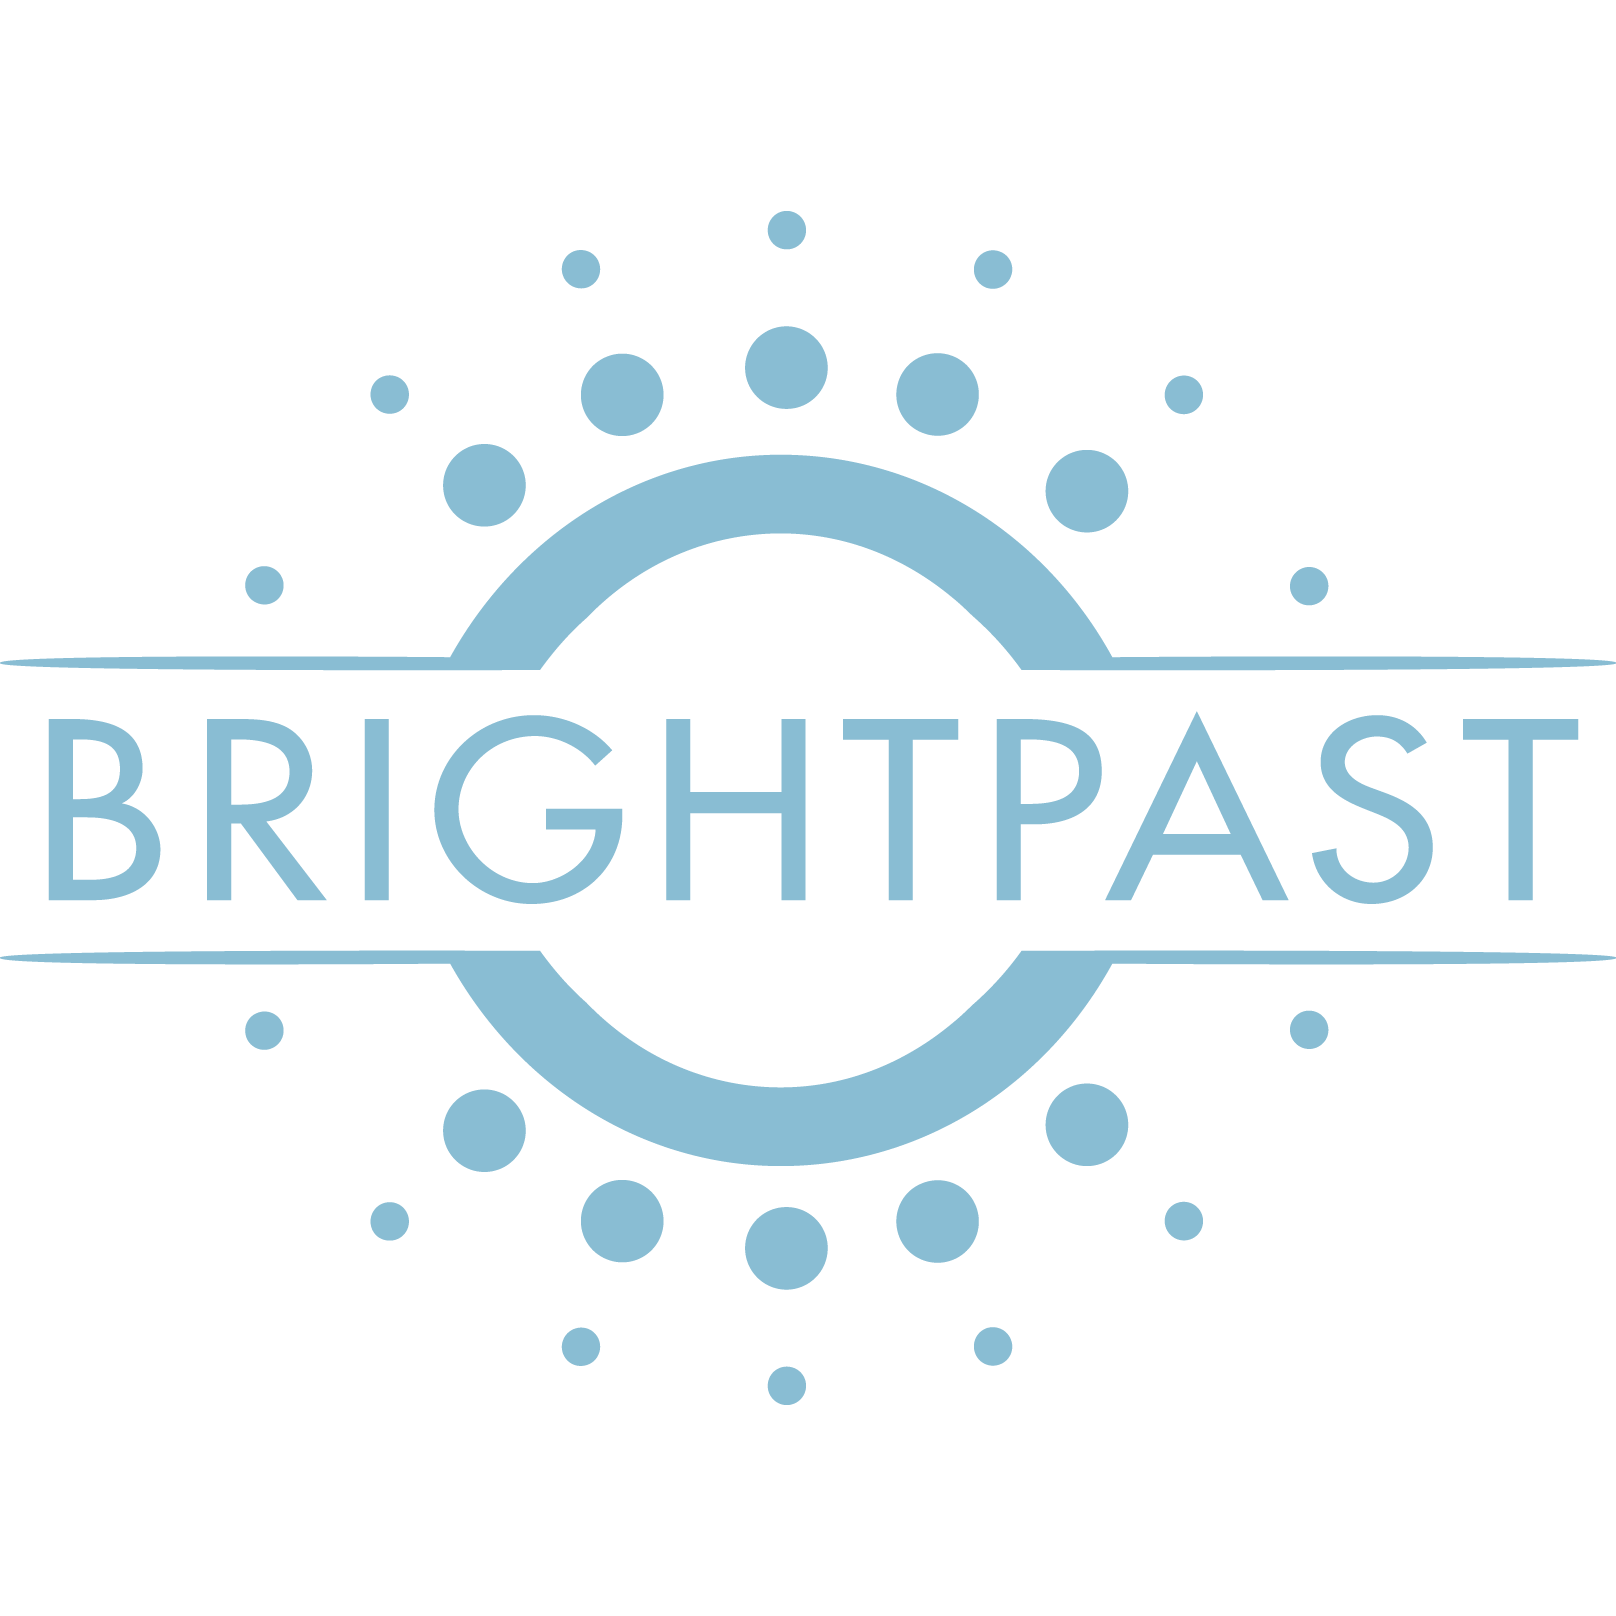 Bright Past Logo - Reputation Management